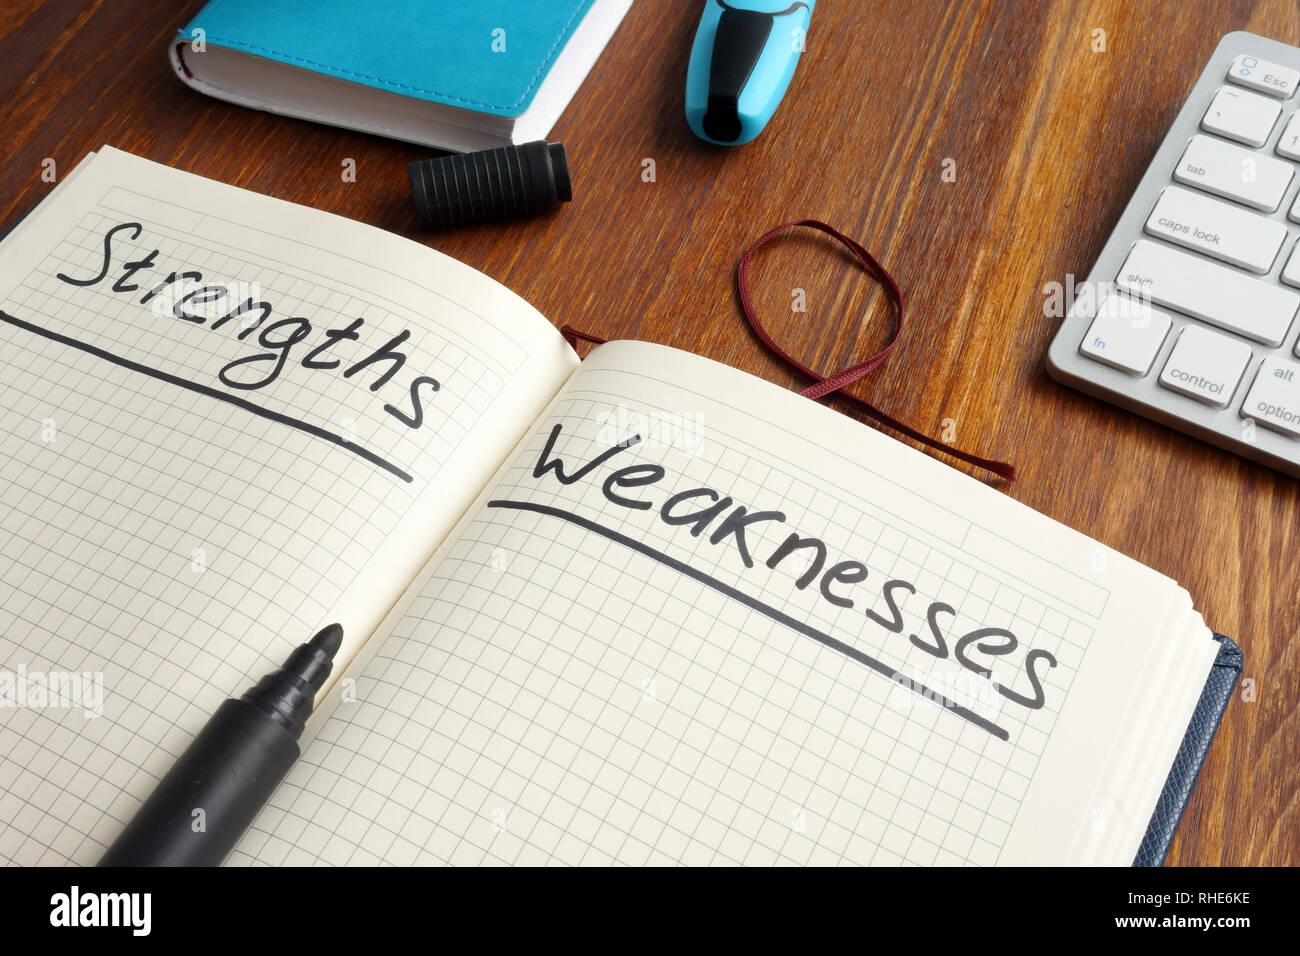 List of Strengths and Weaknesses in the note. - Stock Image